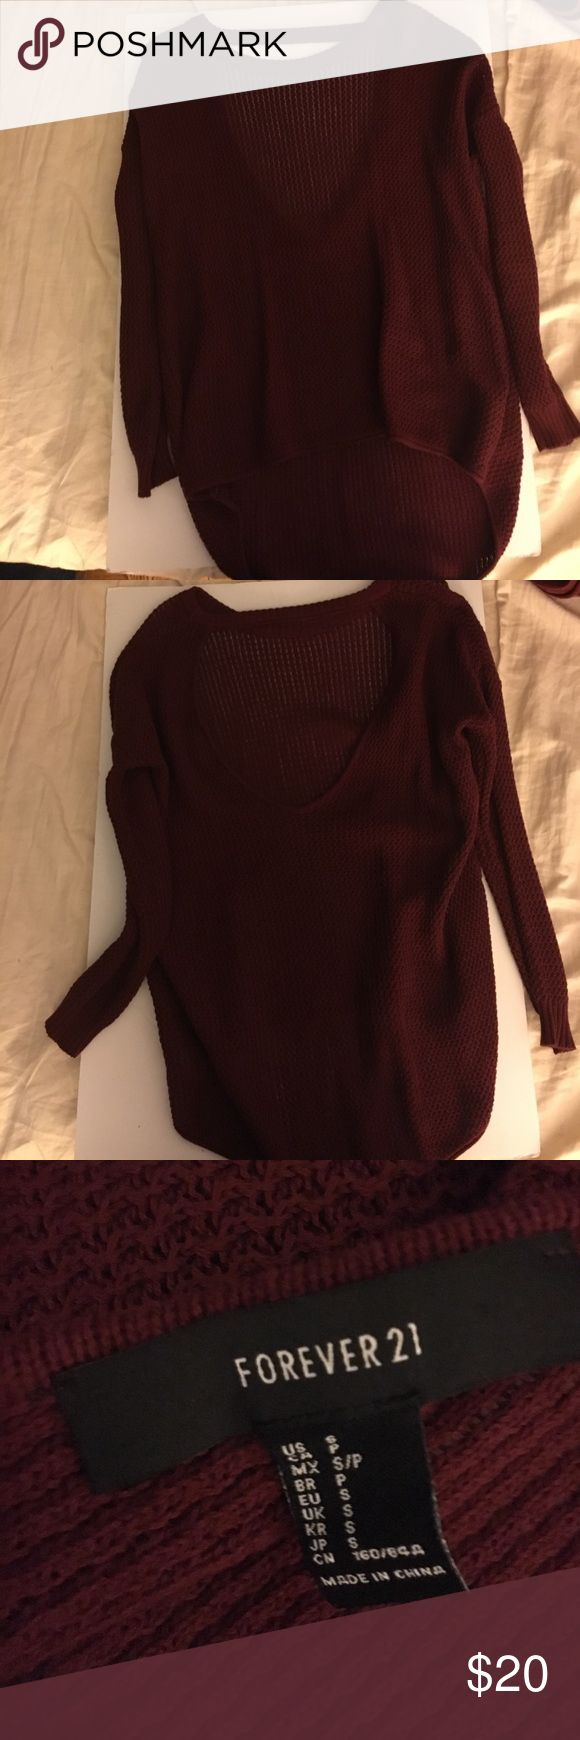 Forever 21 burgundy red sweater Forever 21 burgundy red knit sweater, cutout on the back, size Small never worn Forever 21 Sweaters